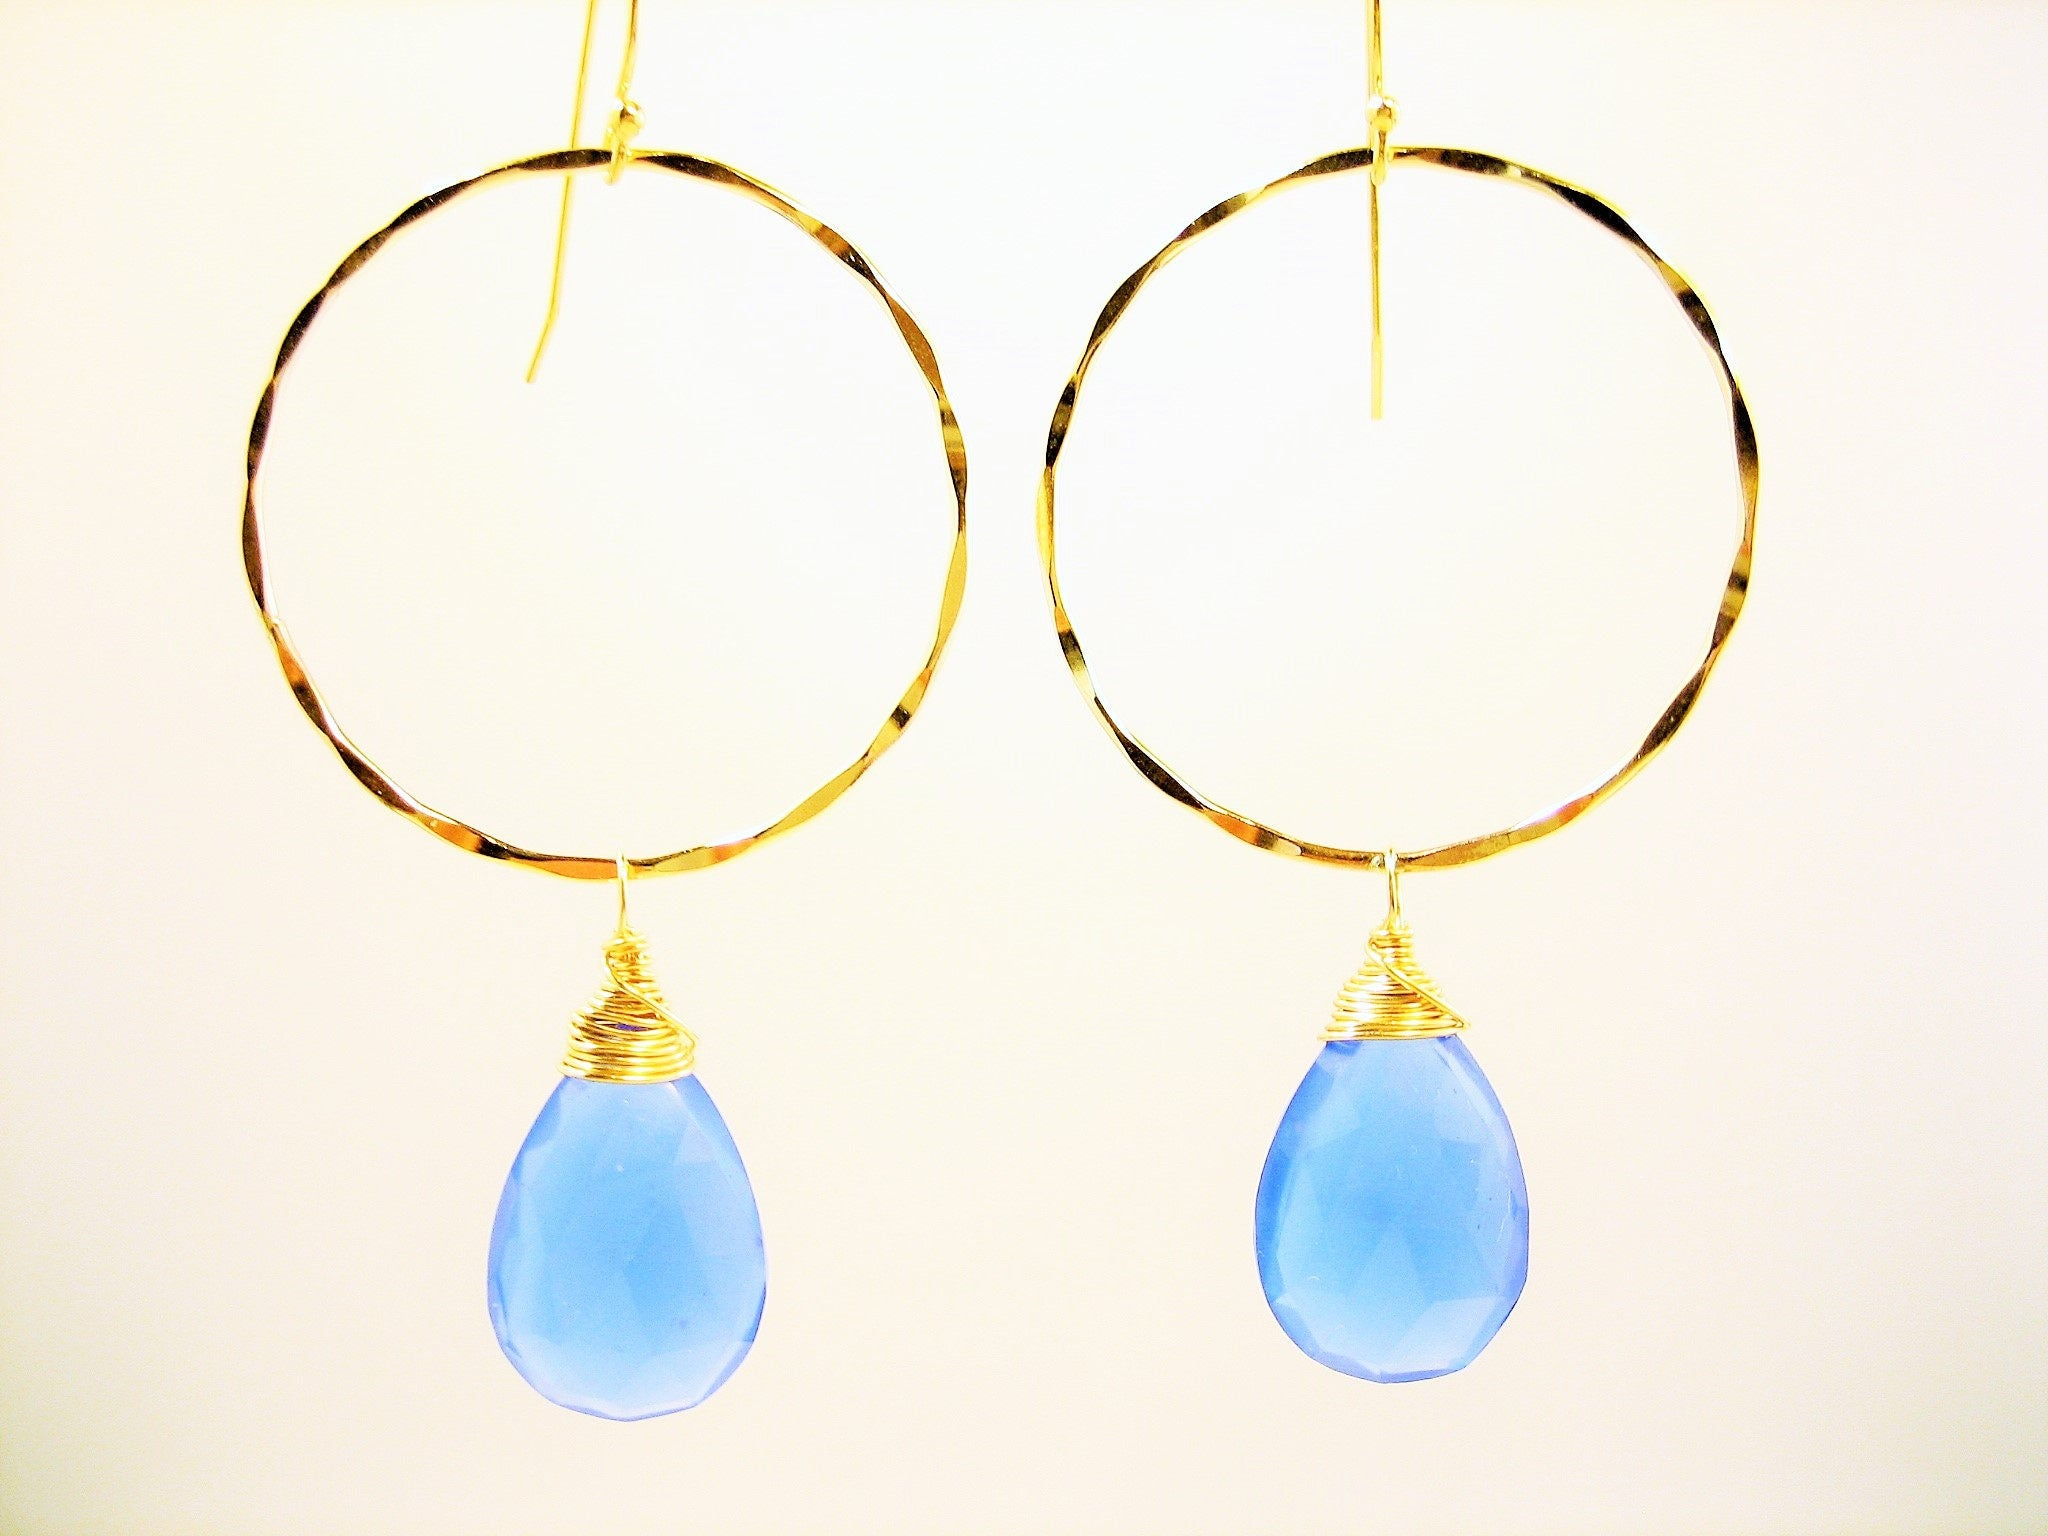 Boho - Gypsy hammered golden circle earrings with bright blue chalcedony, blue and gold artisan earrings, handmade hammered gold earrings